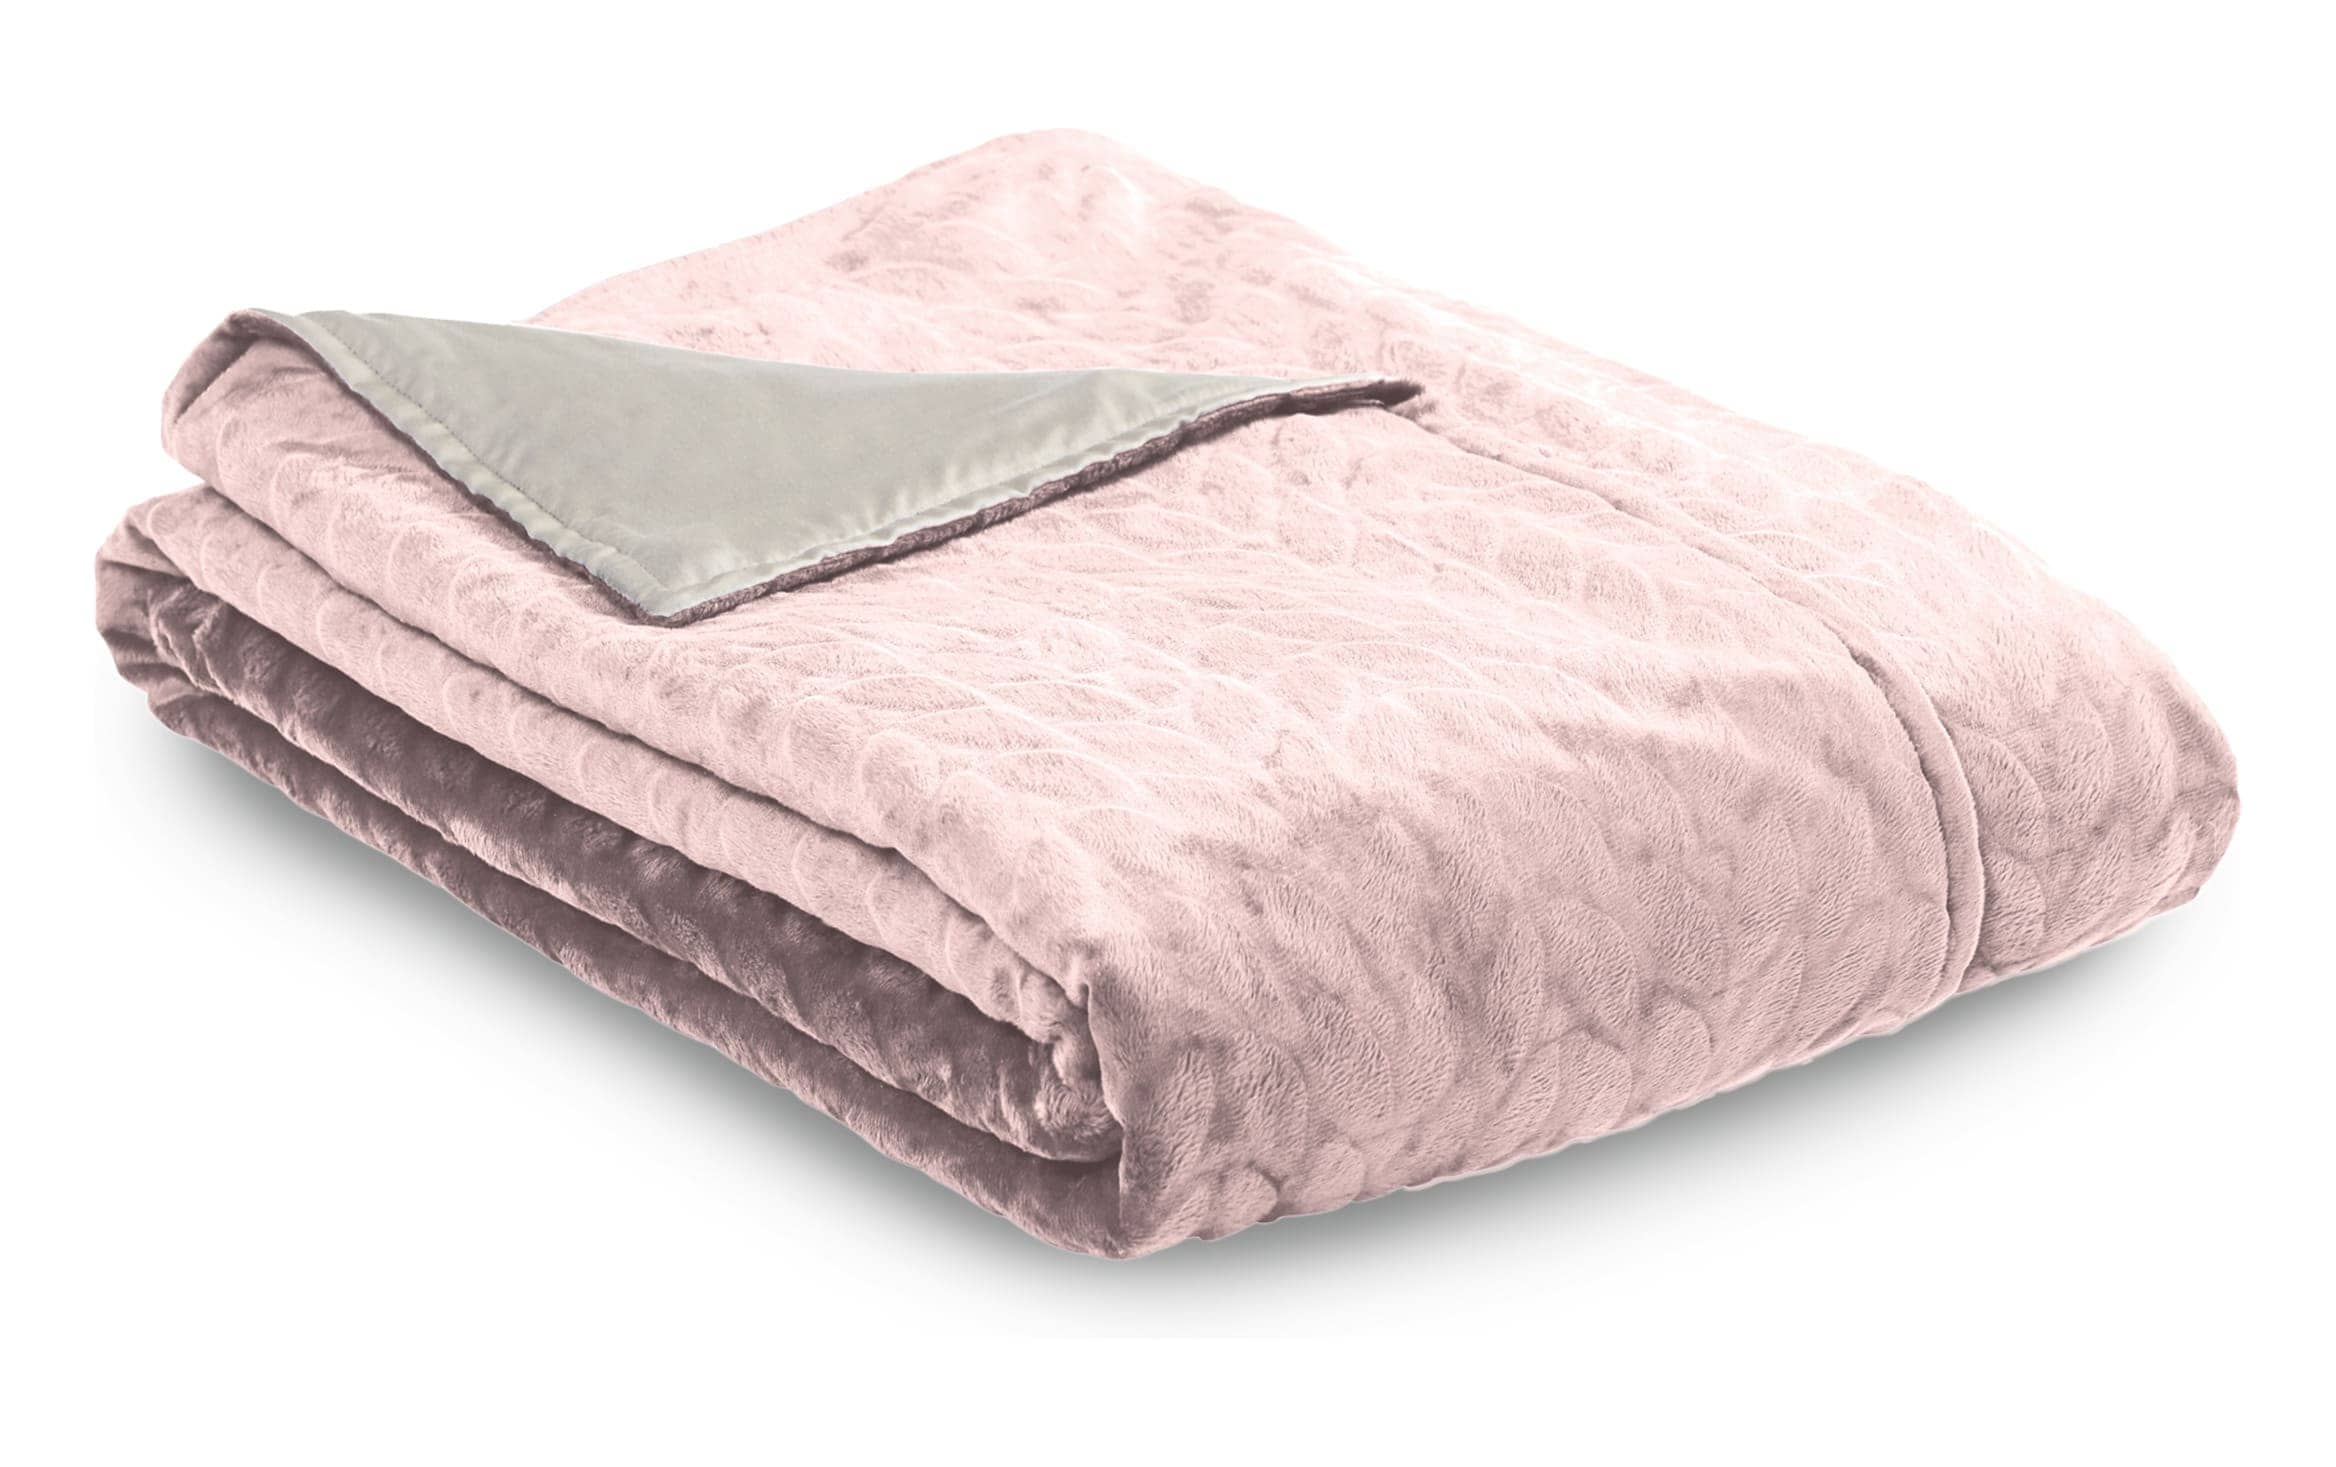 Comfort 2 0 Soft Pink Duvet Cover Weighted Blanket Bobs Com